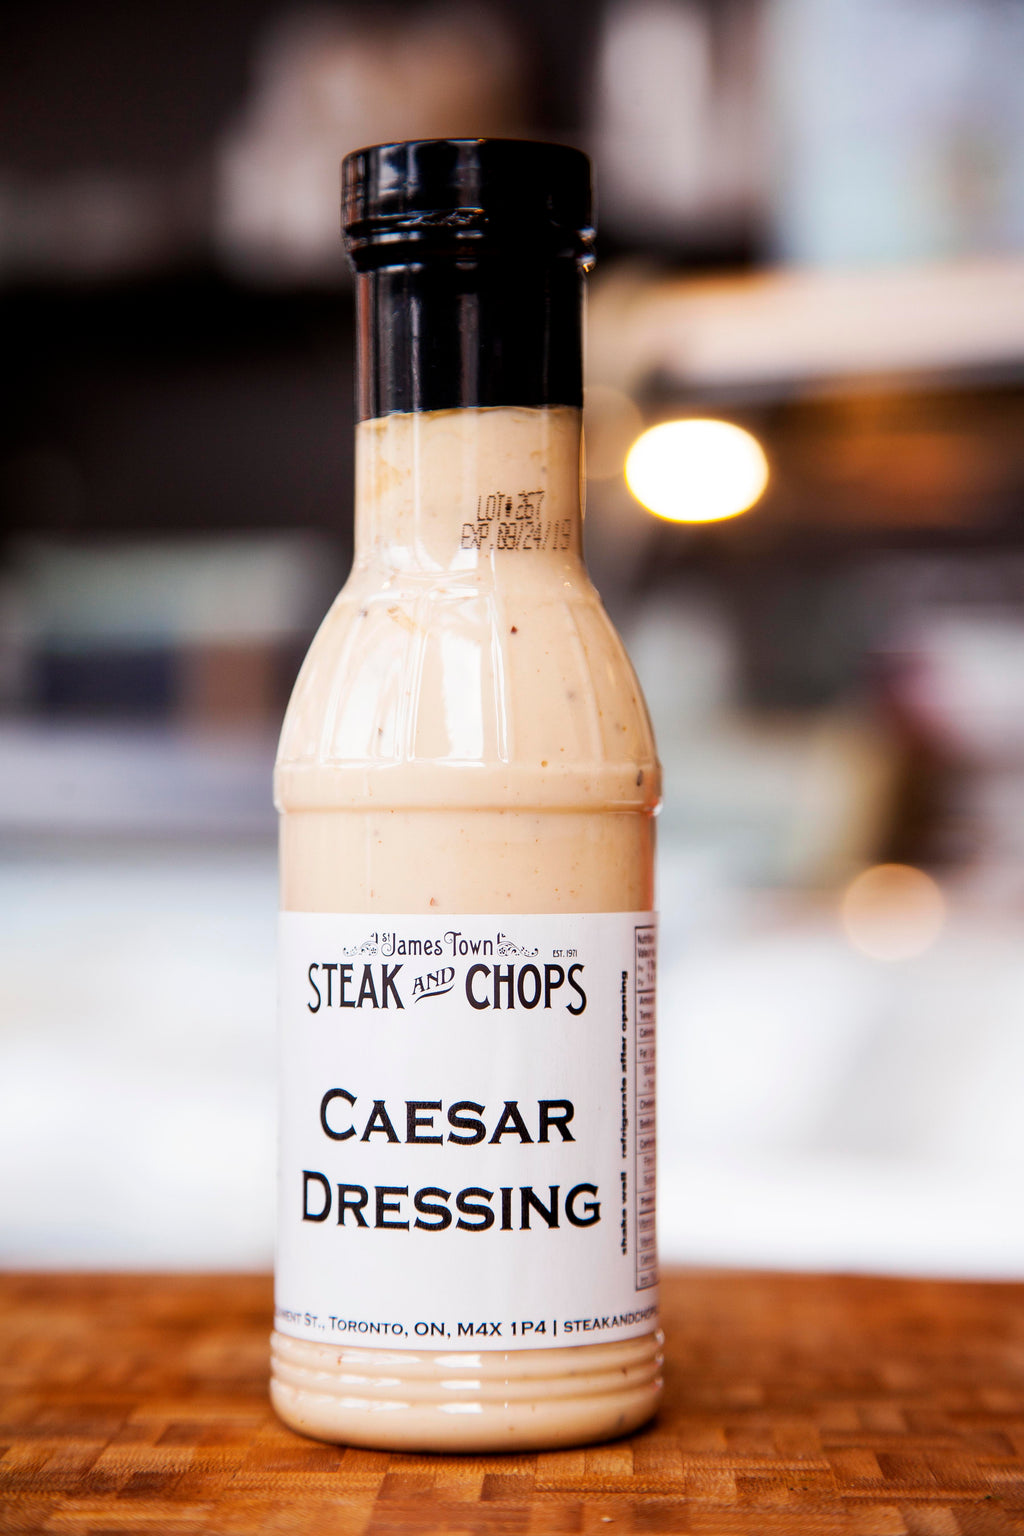 PS Caesar Dressing